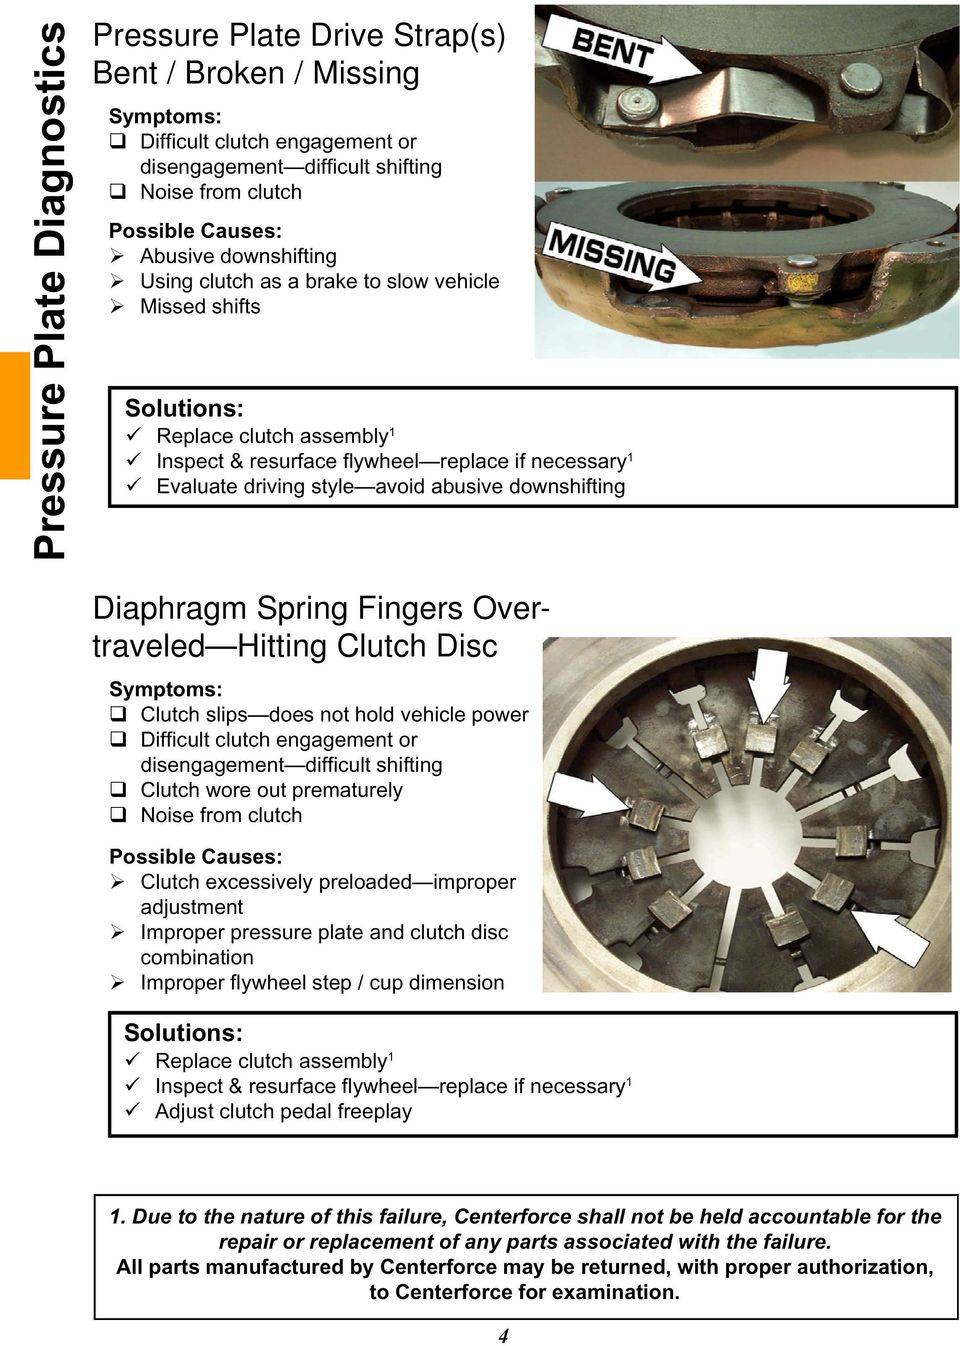 Table of Contents  How to Use this Diagnostics Guide Pressure Plate